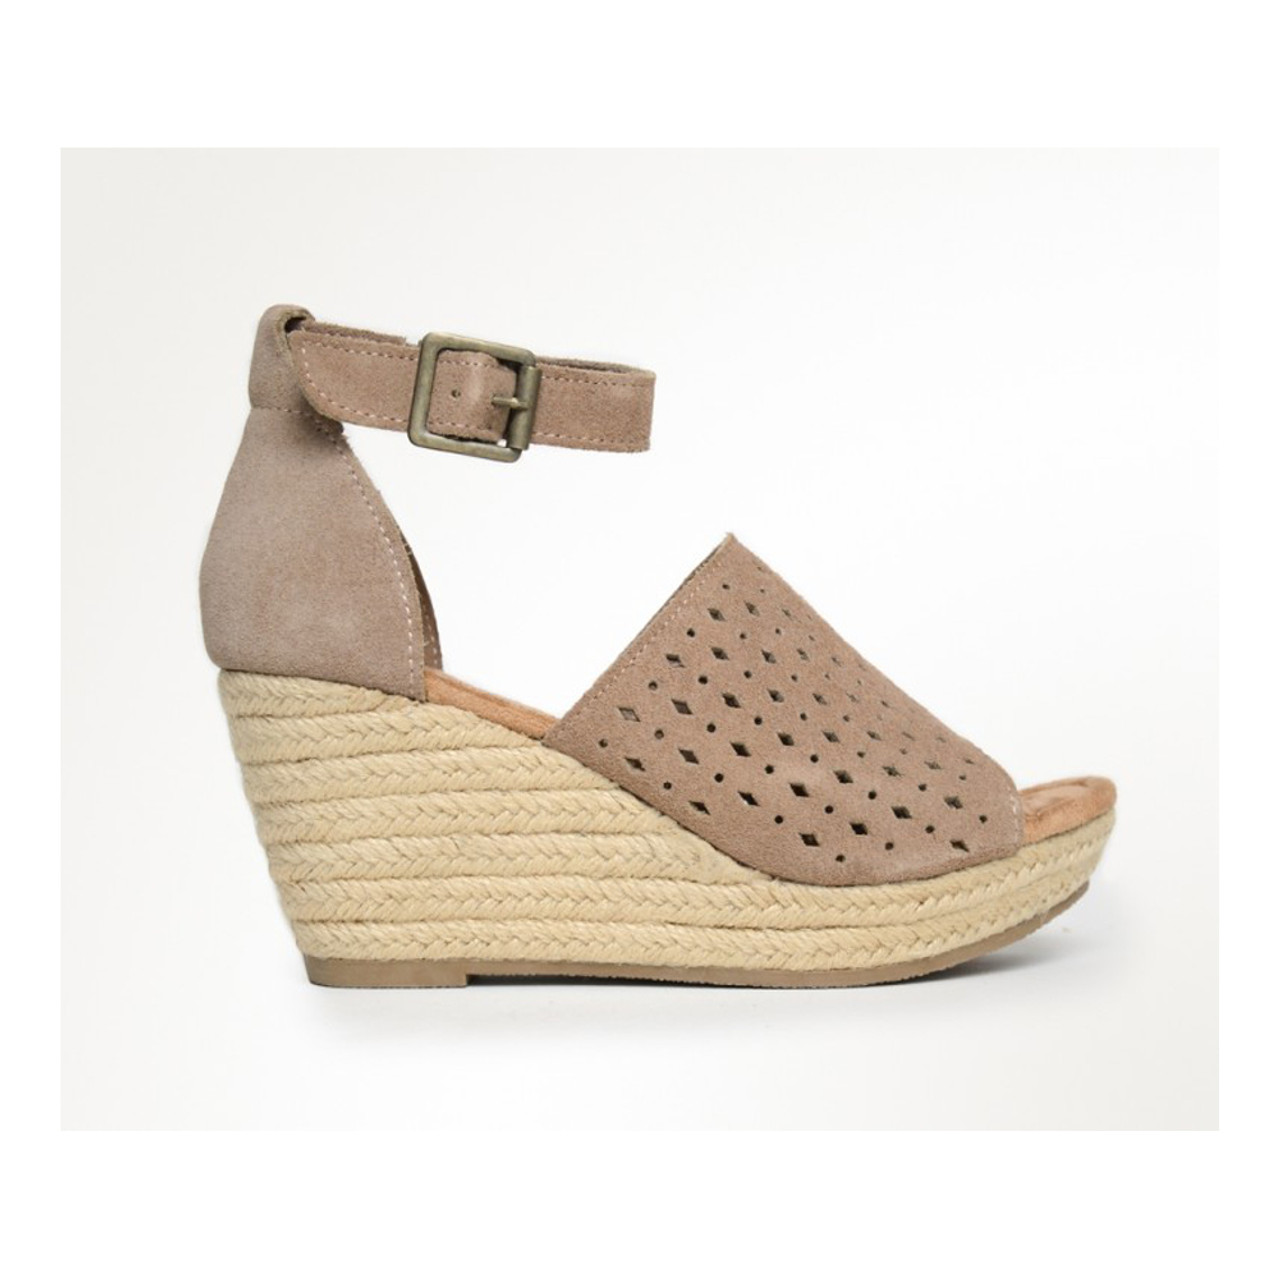 Minnetonka Women s Bell Wedge Sandal Taupe - Shop now   Shoolu.com e4099358b6